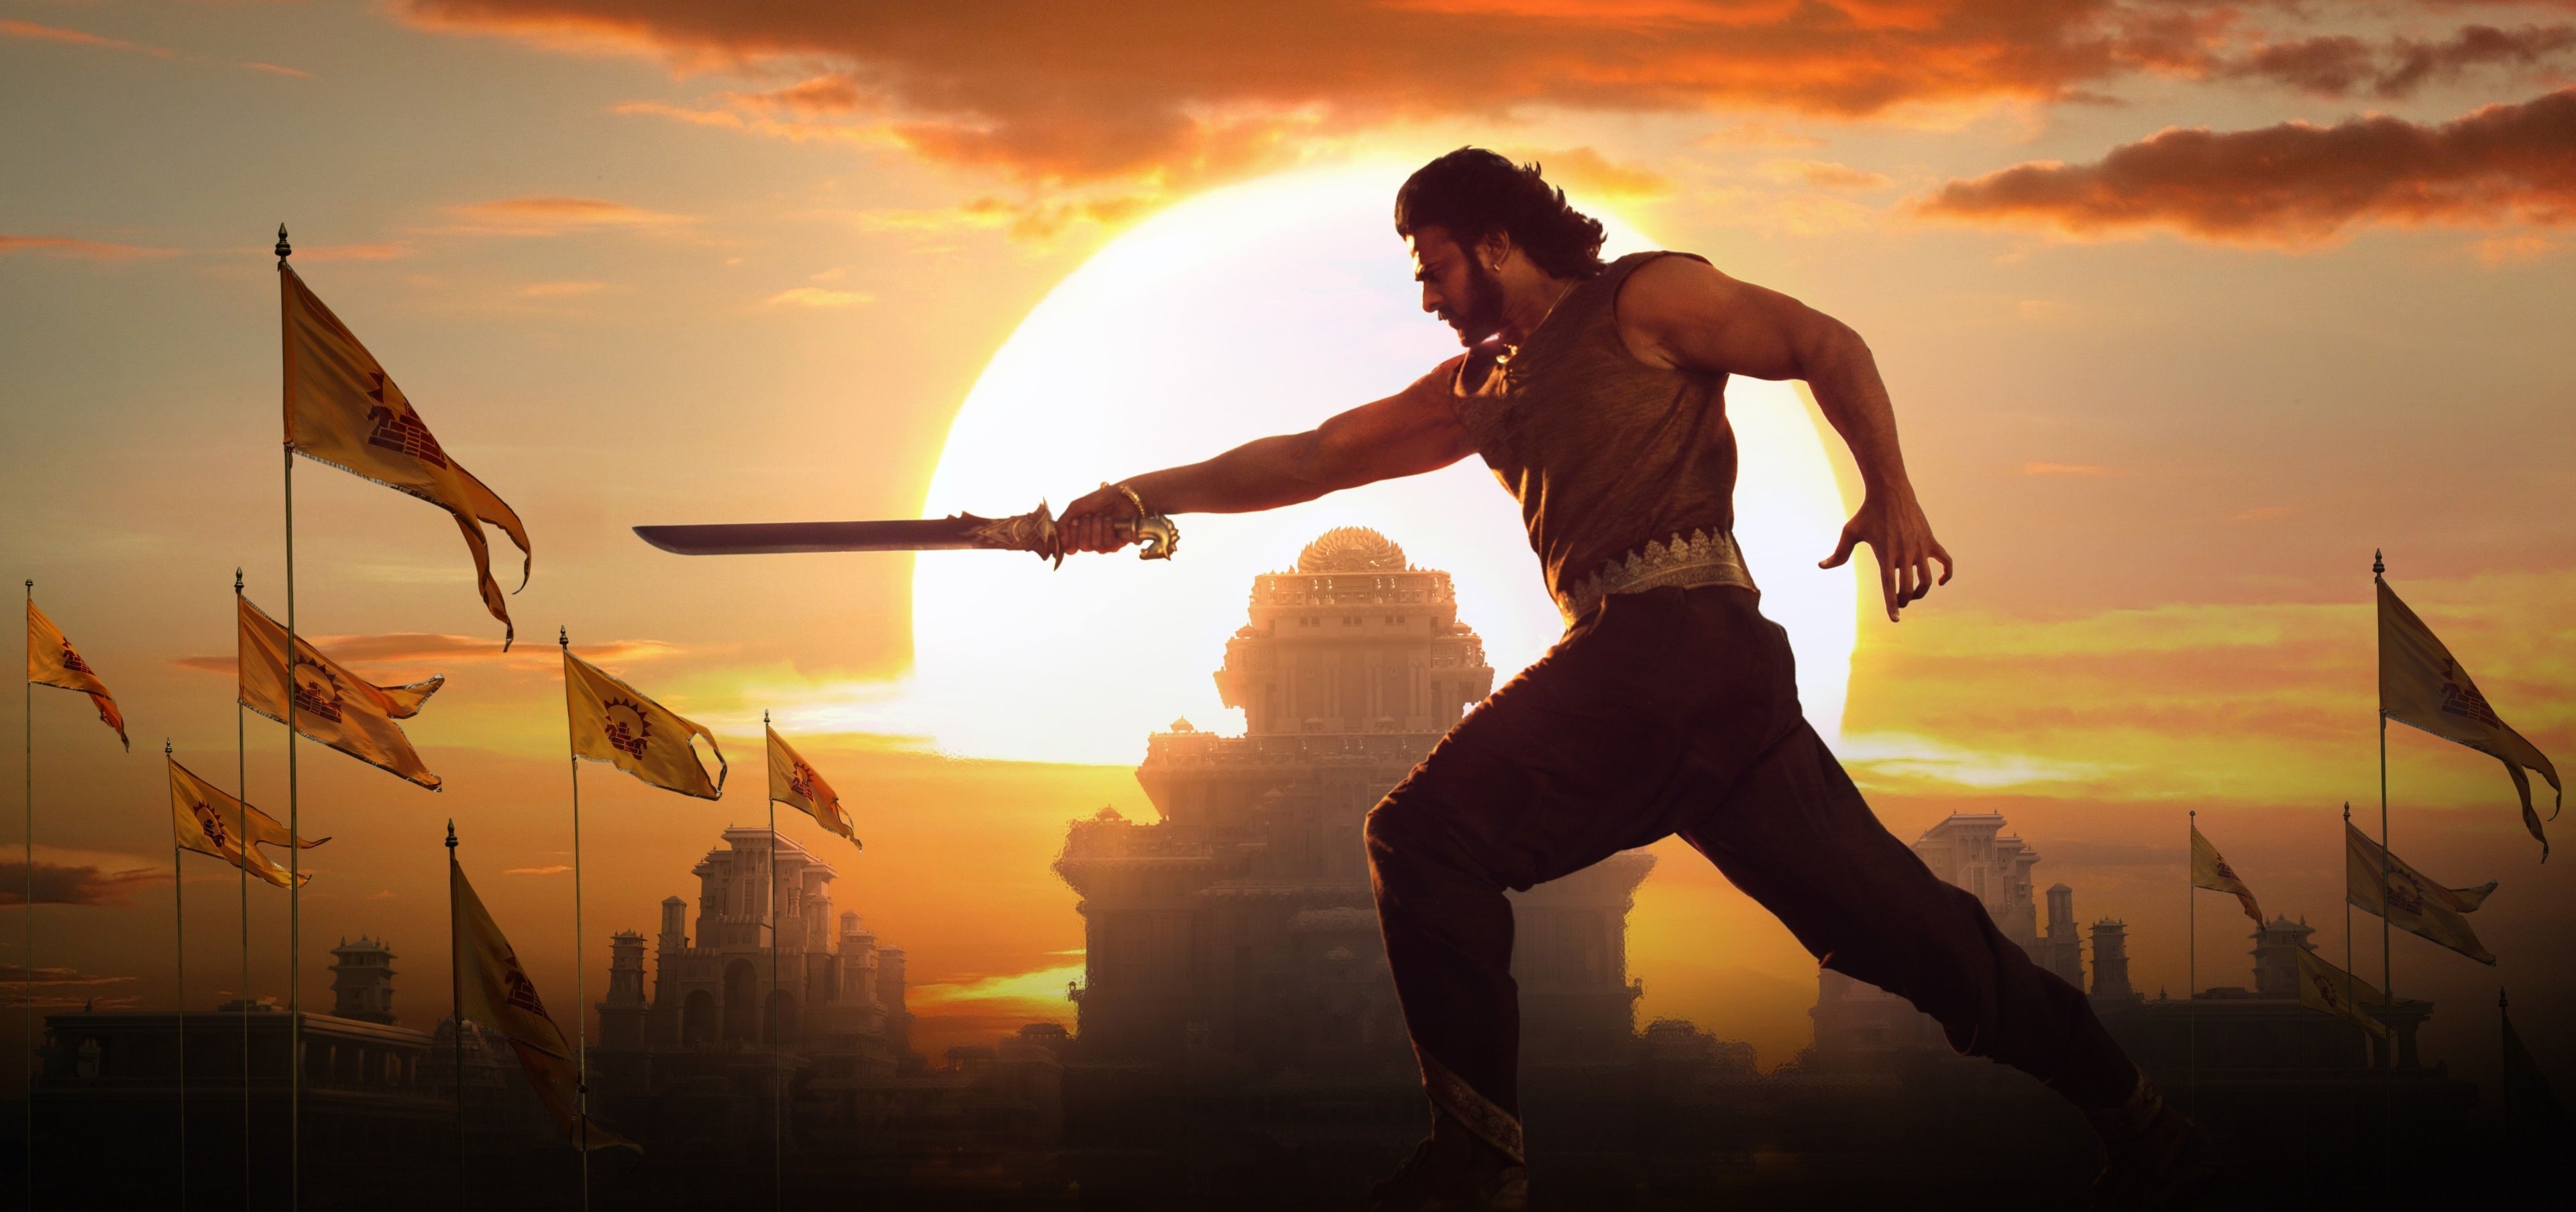 Baahubali 2 movie telugu download hd